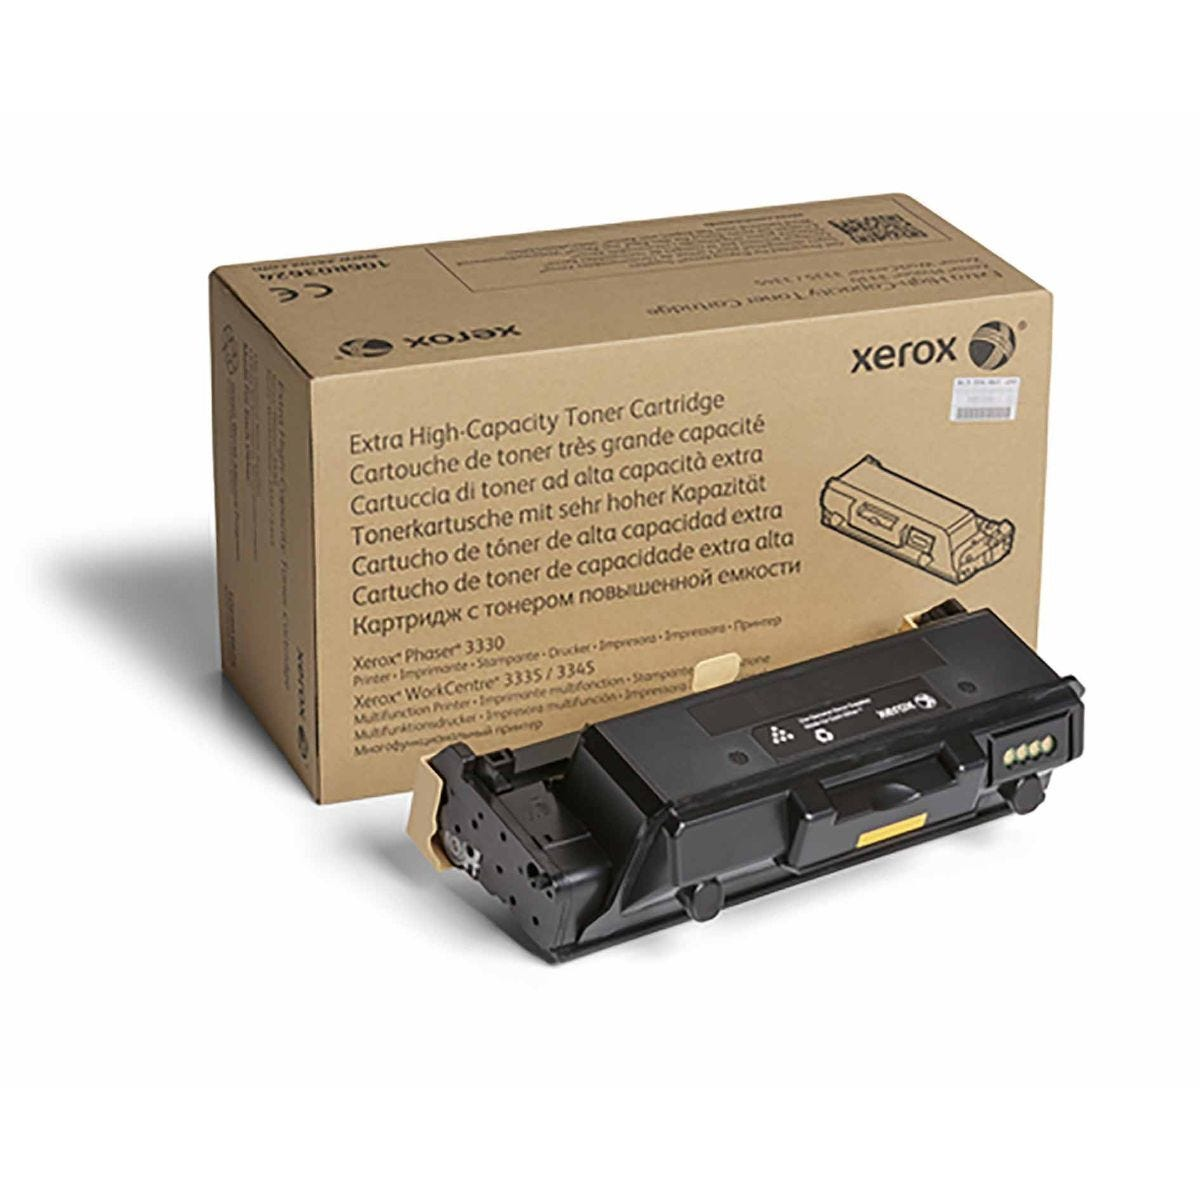 Xerox 3335 - 3345 Extra High Capacity Black Original Toner Cartridge